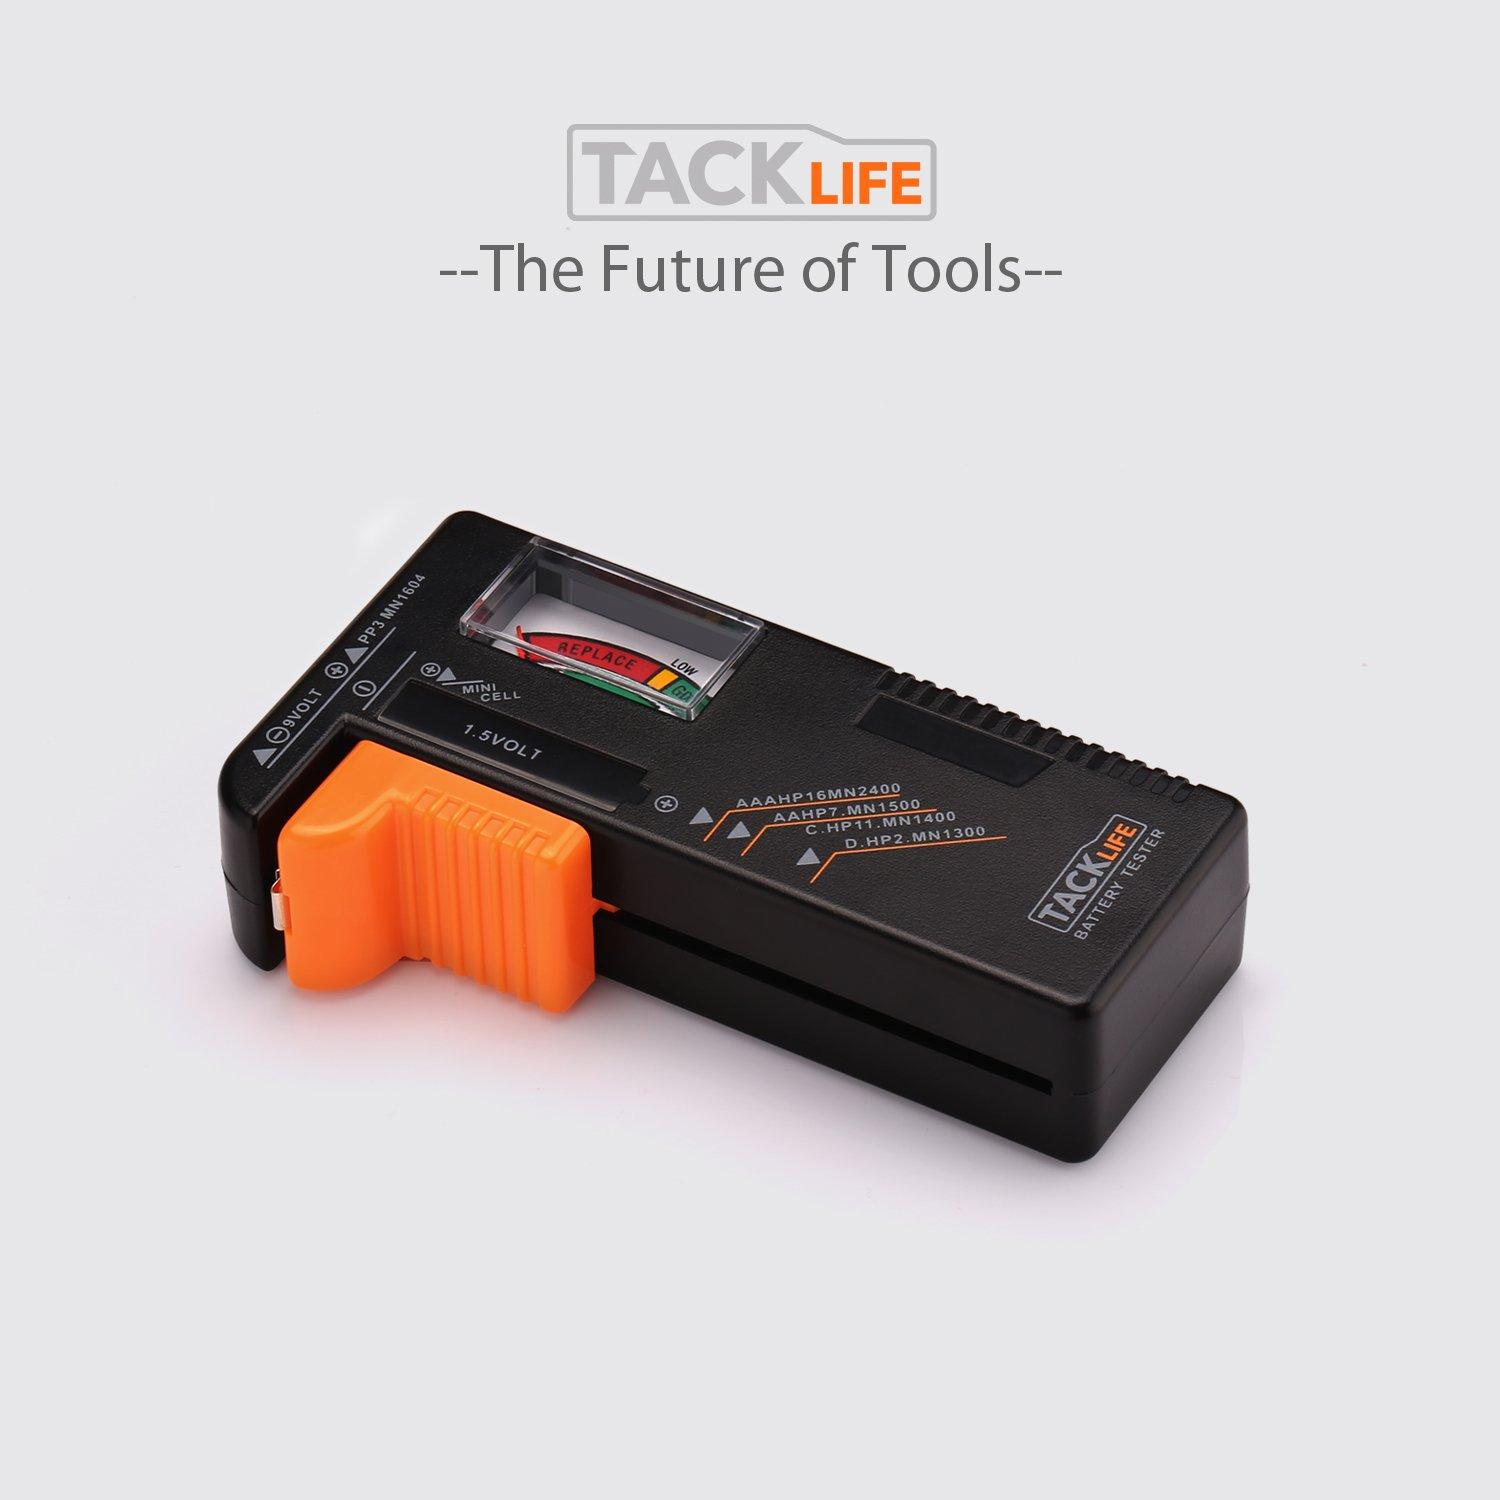 Tacklife MBT01 Universal Battery Checker for AA AAA C D 9V 1.5V Button Cell Batteries Battery Tester Digital Battery Tester Volt Checker Tool with 24 Months Warranty